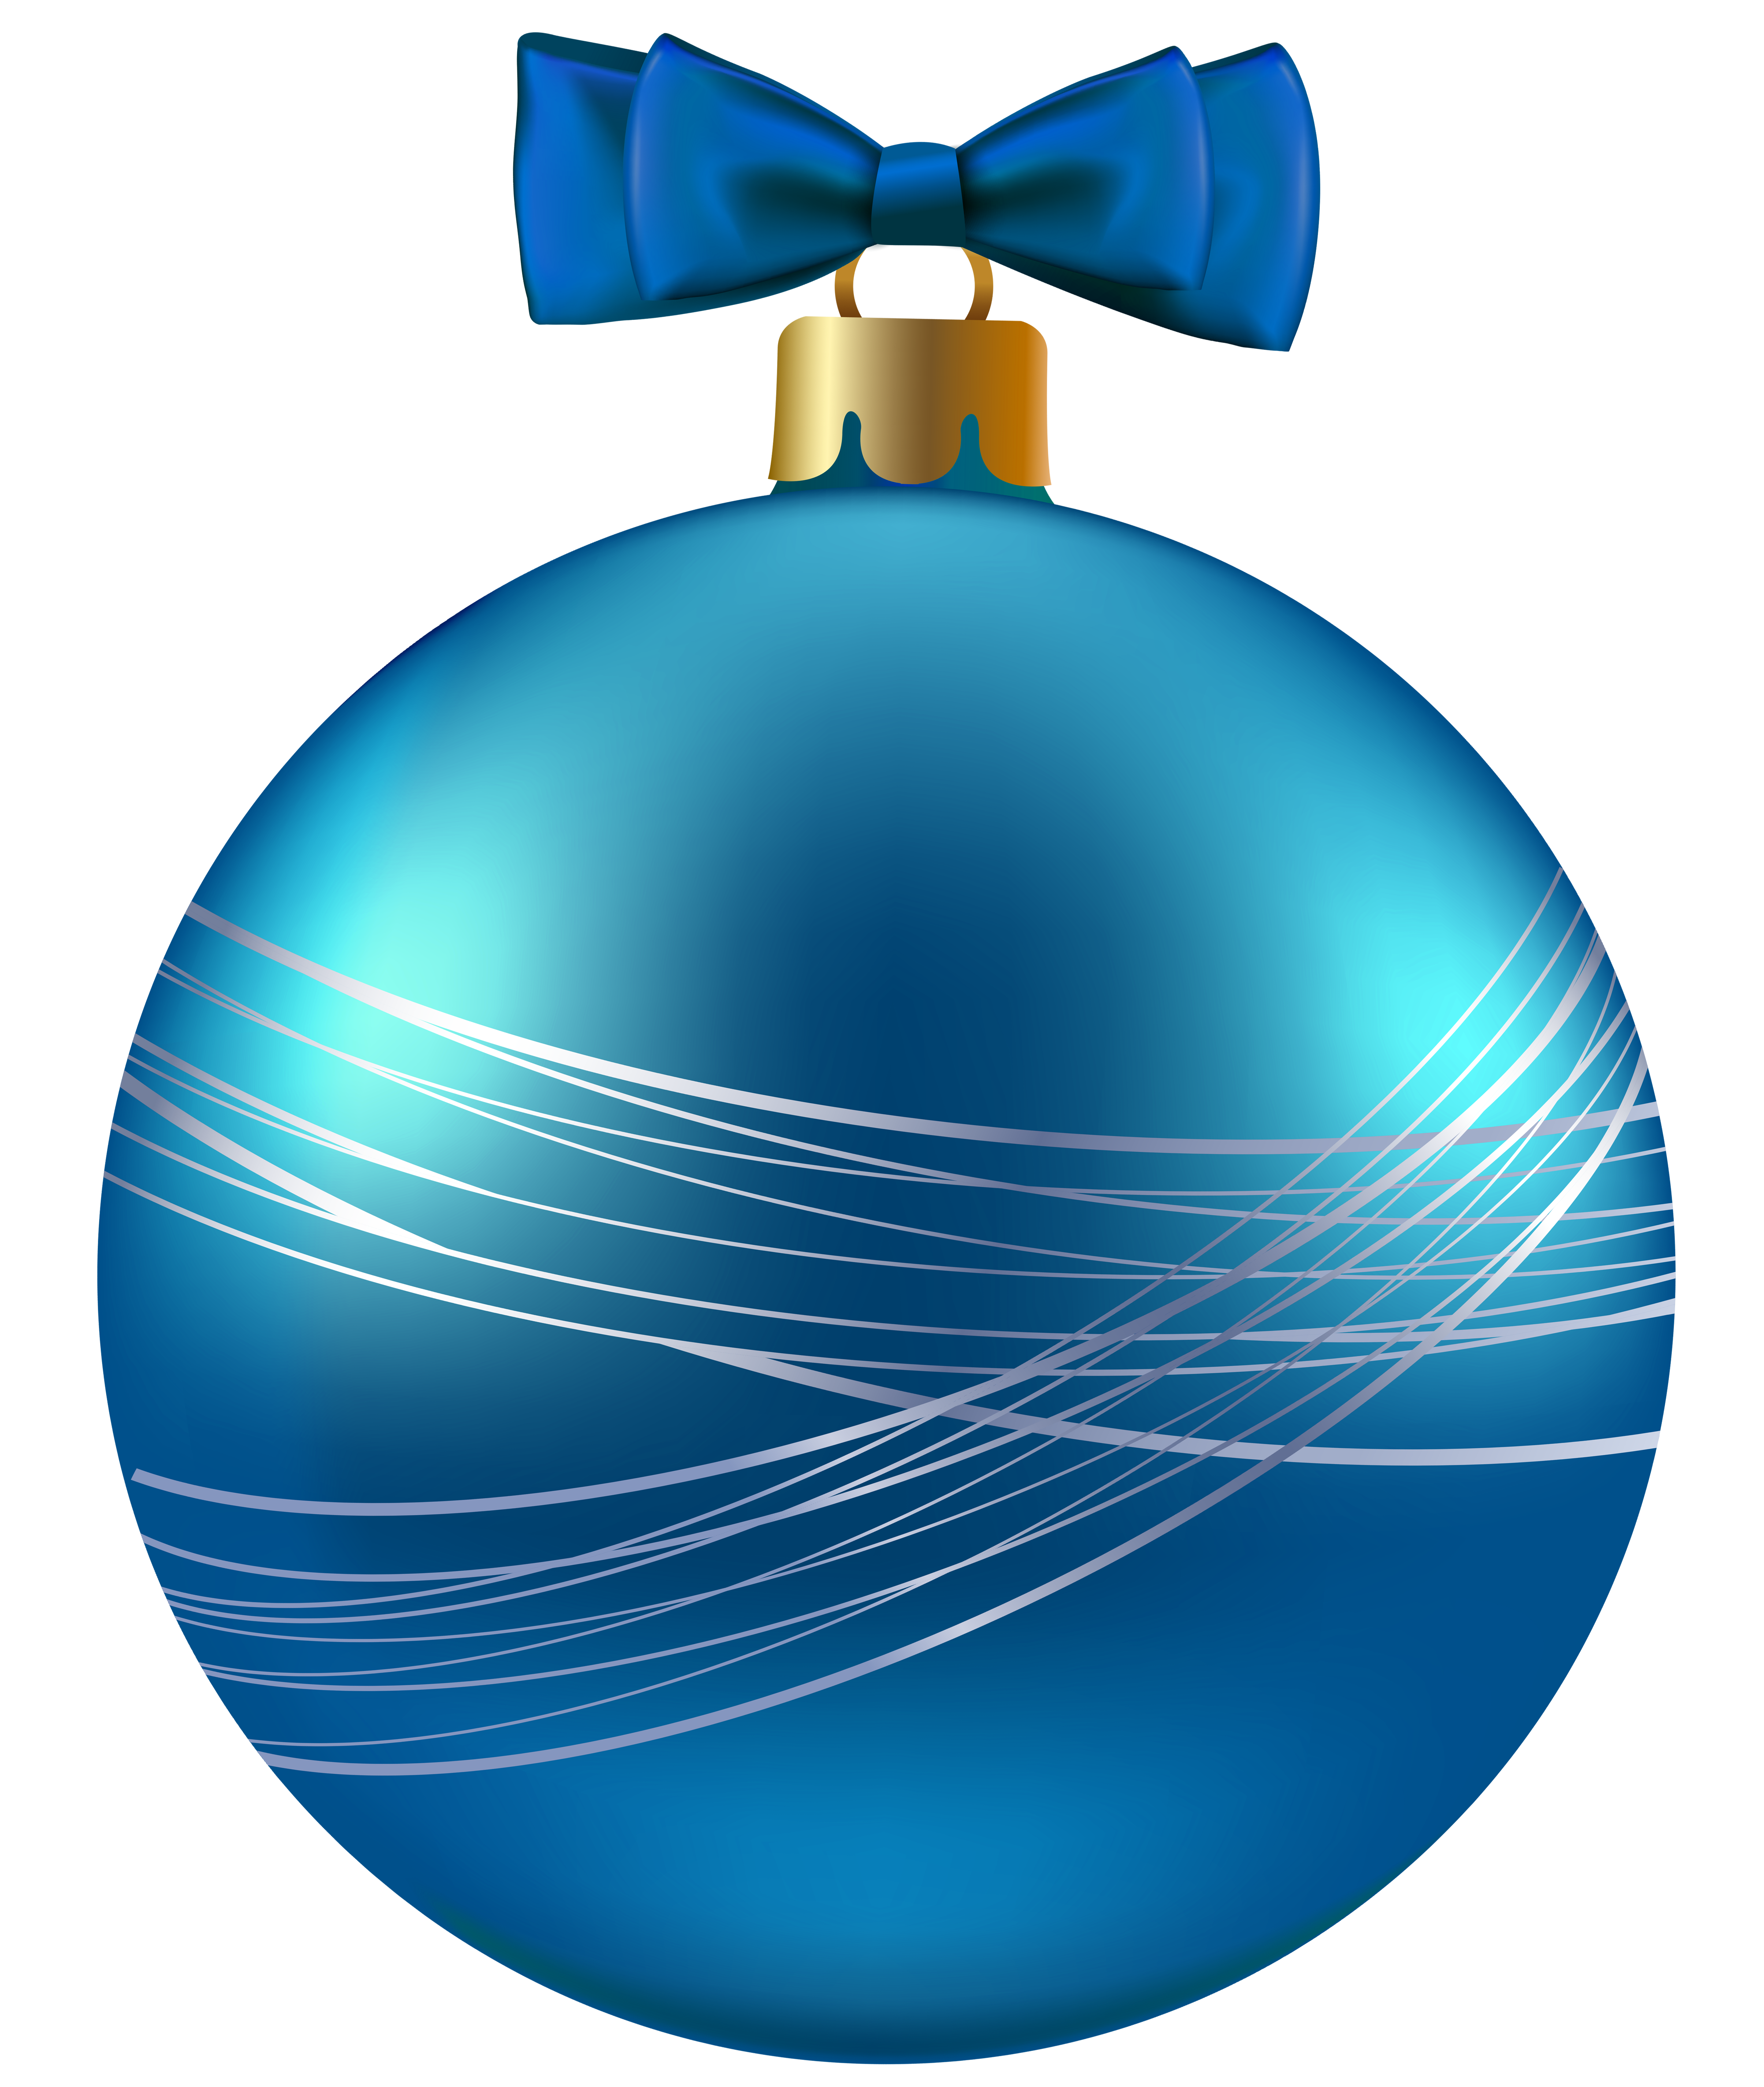 Ornament clipart teal. Blue christmas png image